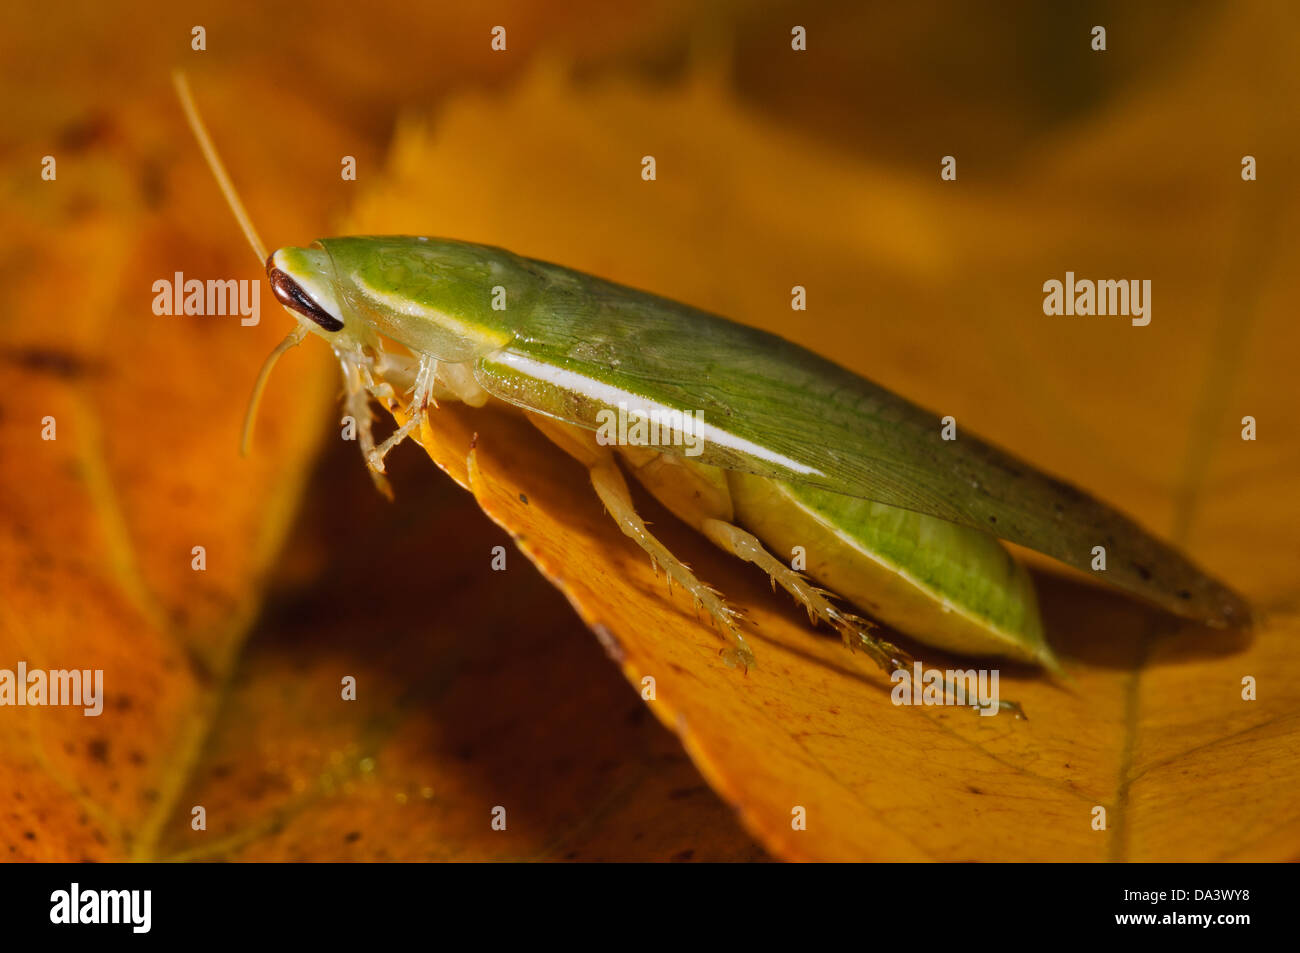 A green banana cockroach (Panchlora nivea) on an autumn leaf. A native of Cuba, the Caribbean and some southern - Stock Image